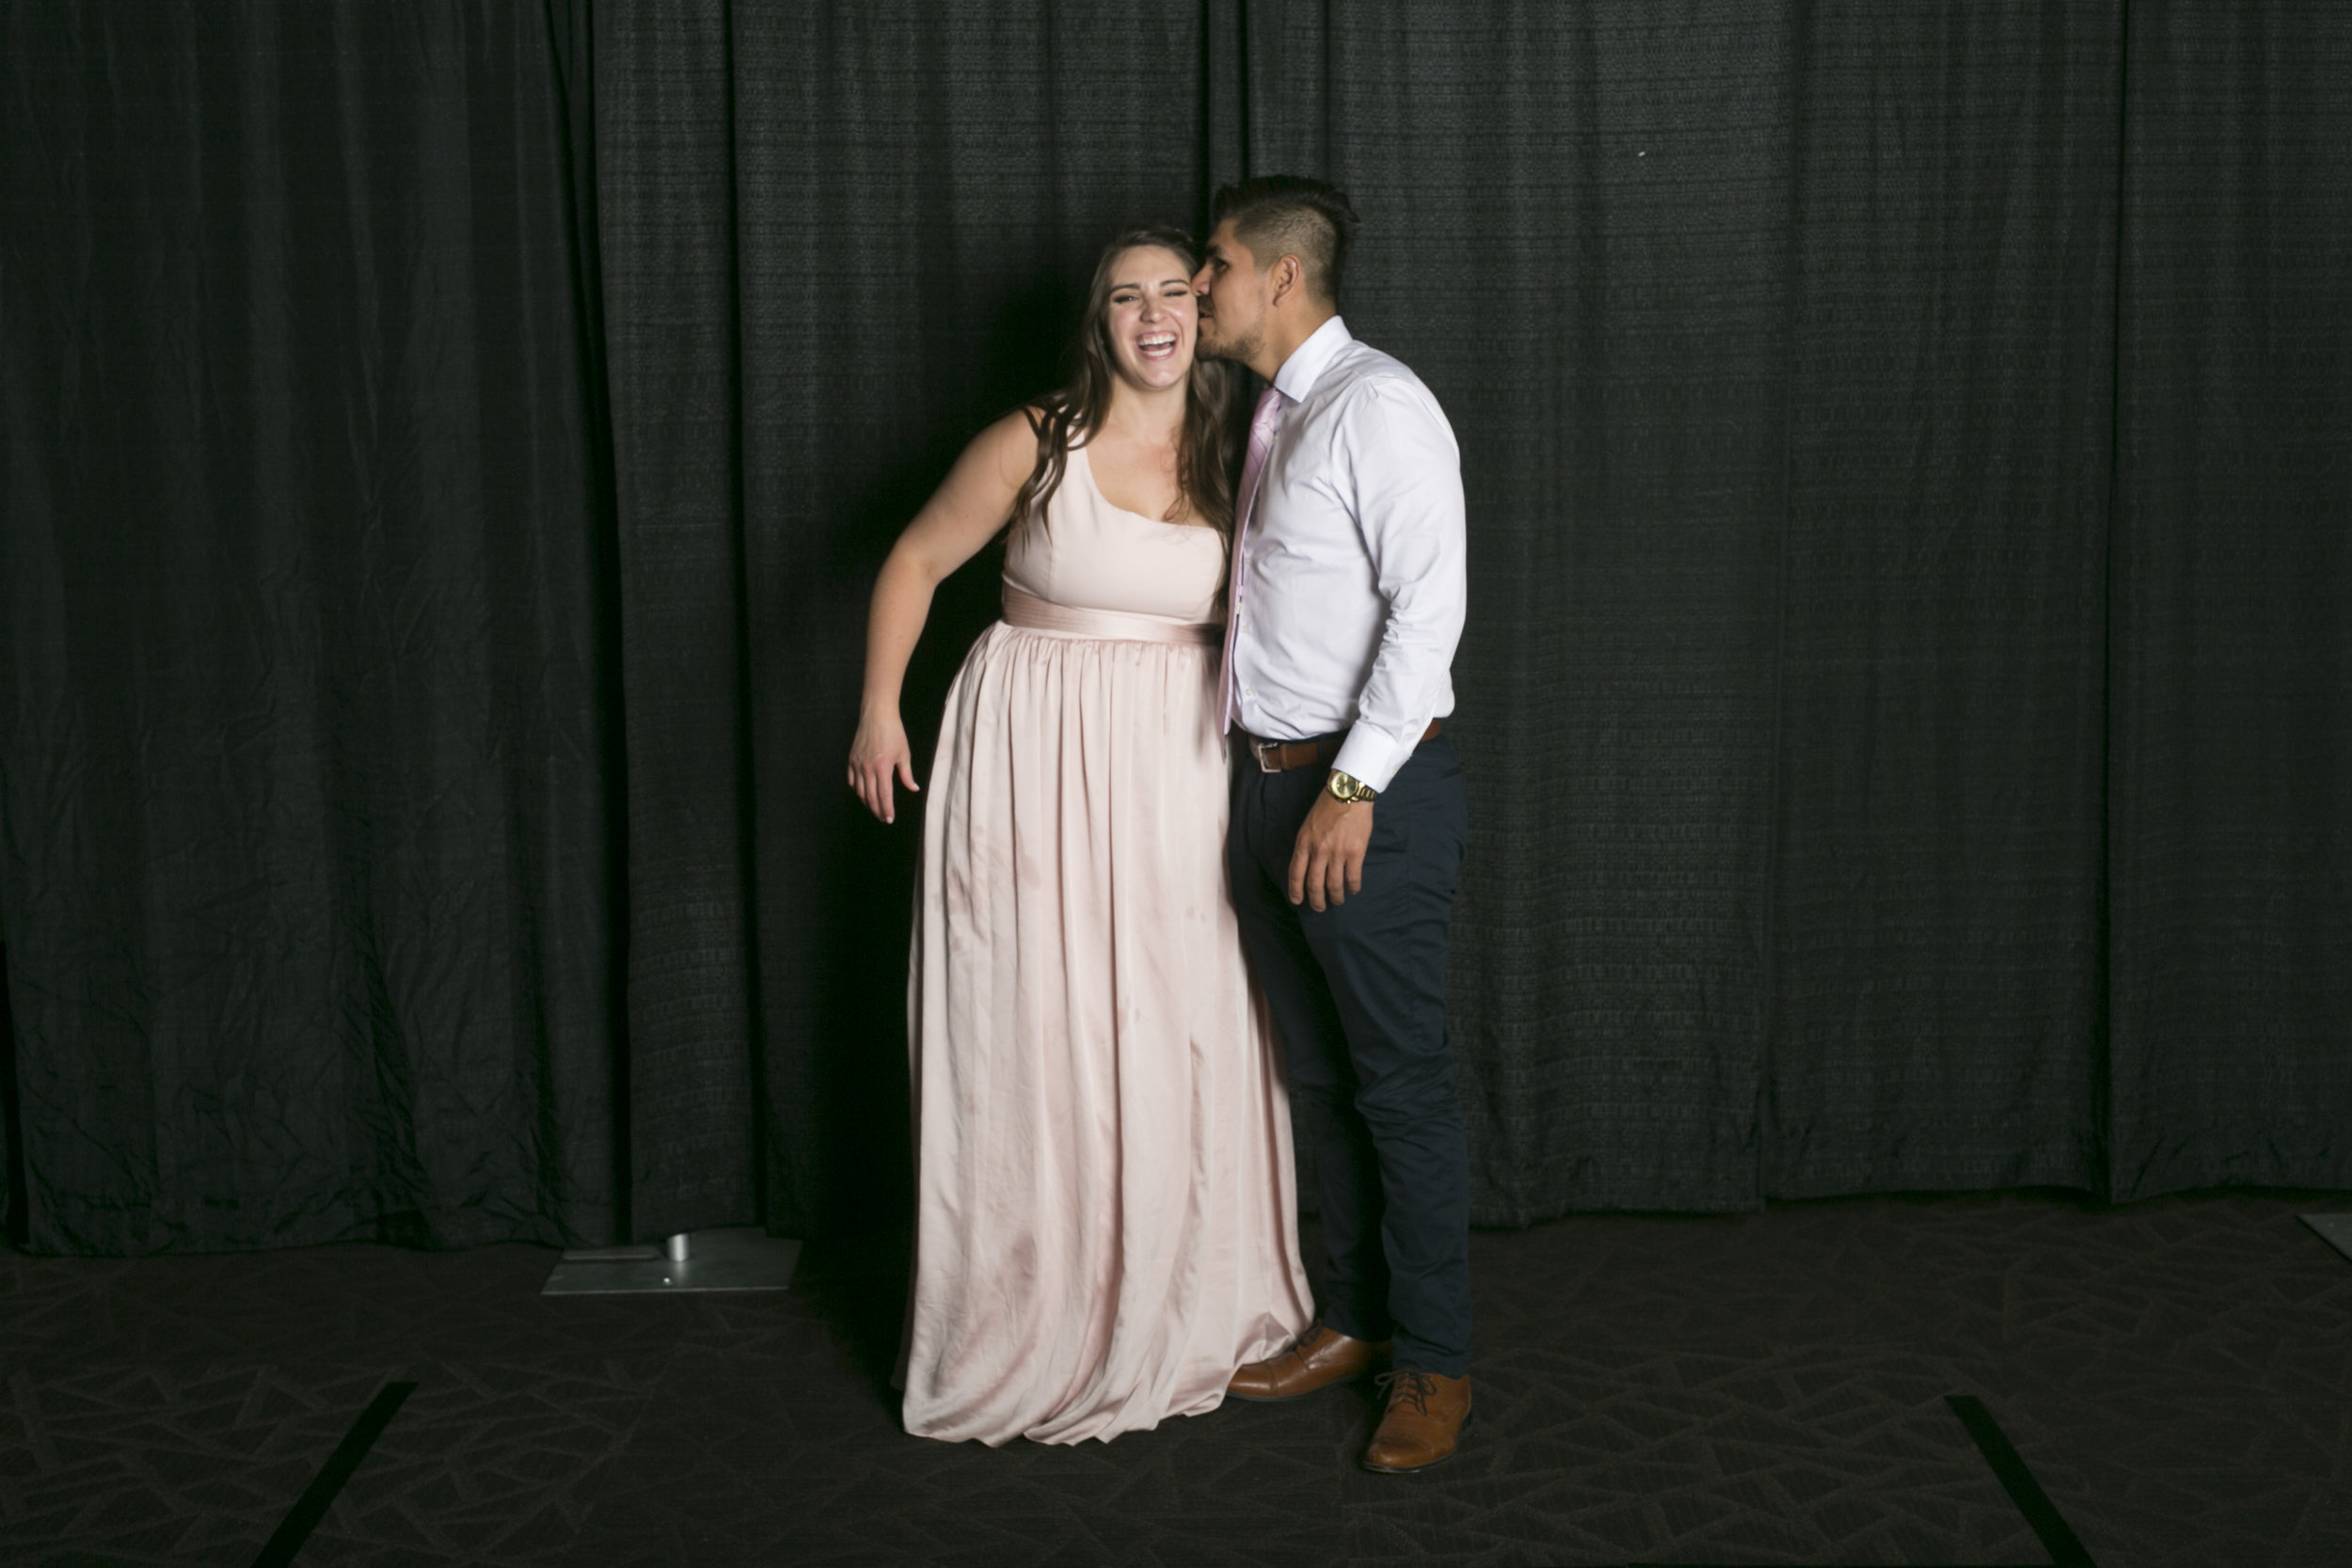 wedding photo booth-163.jpg